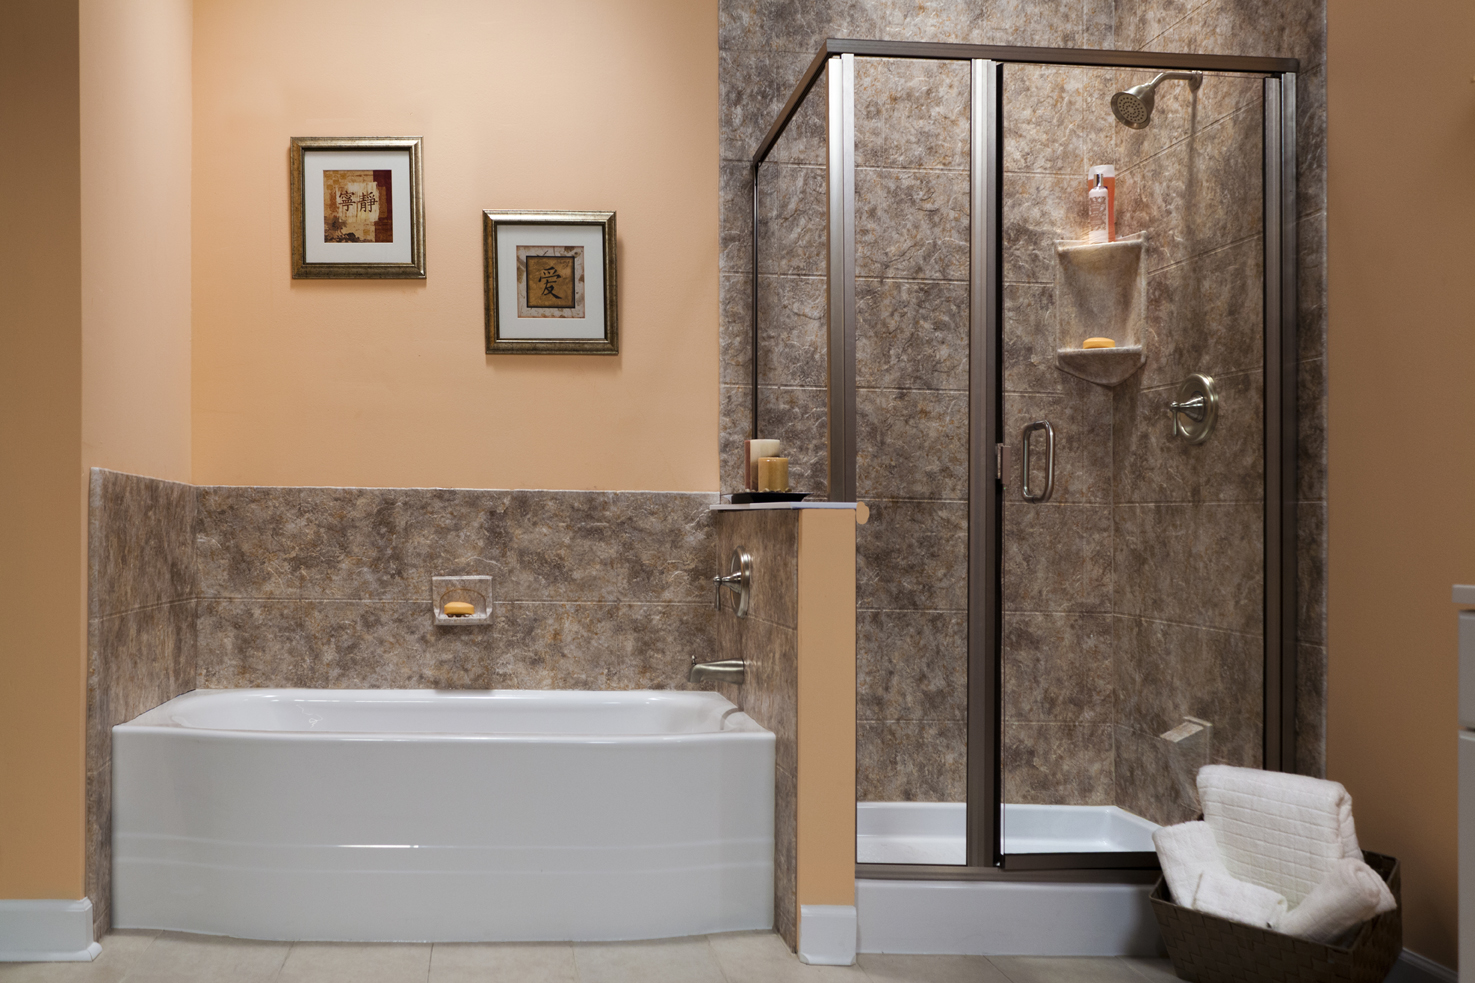 Handicap Accessible Shower- Make Your Home Handicap Accessible